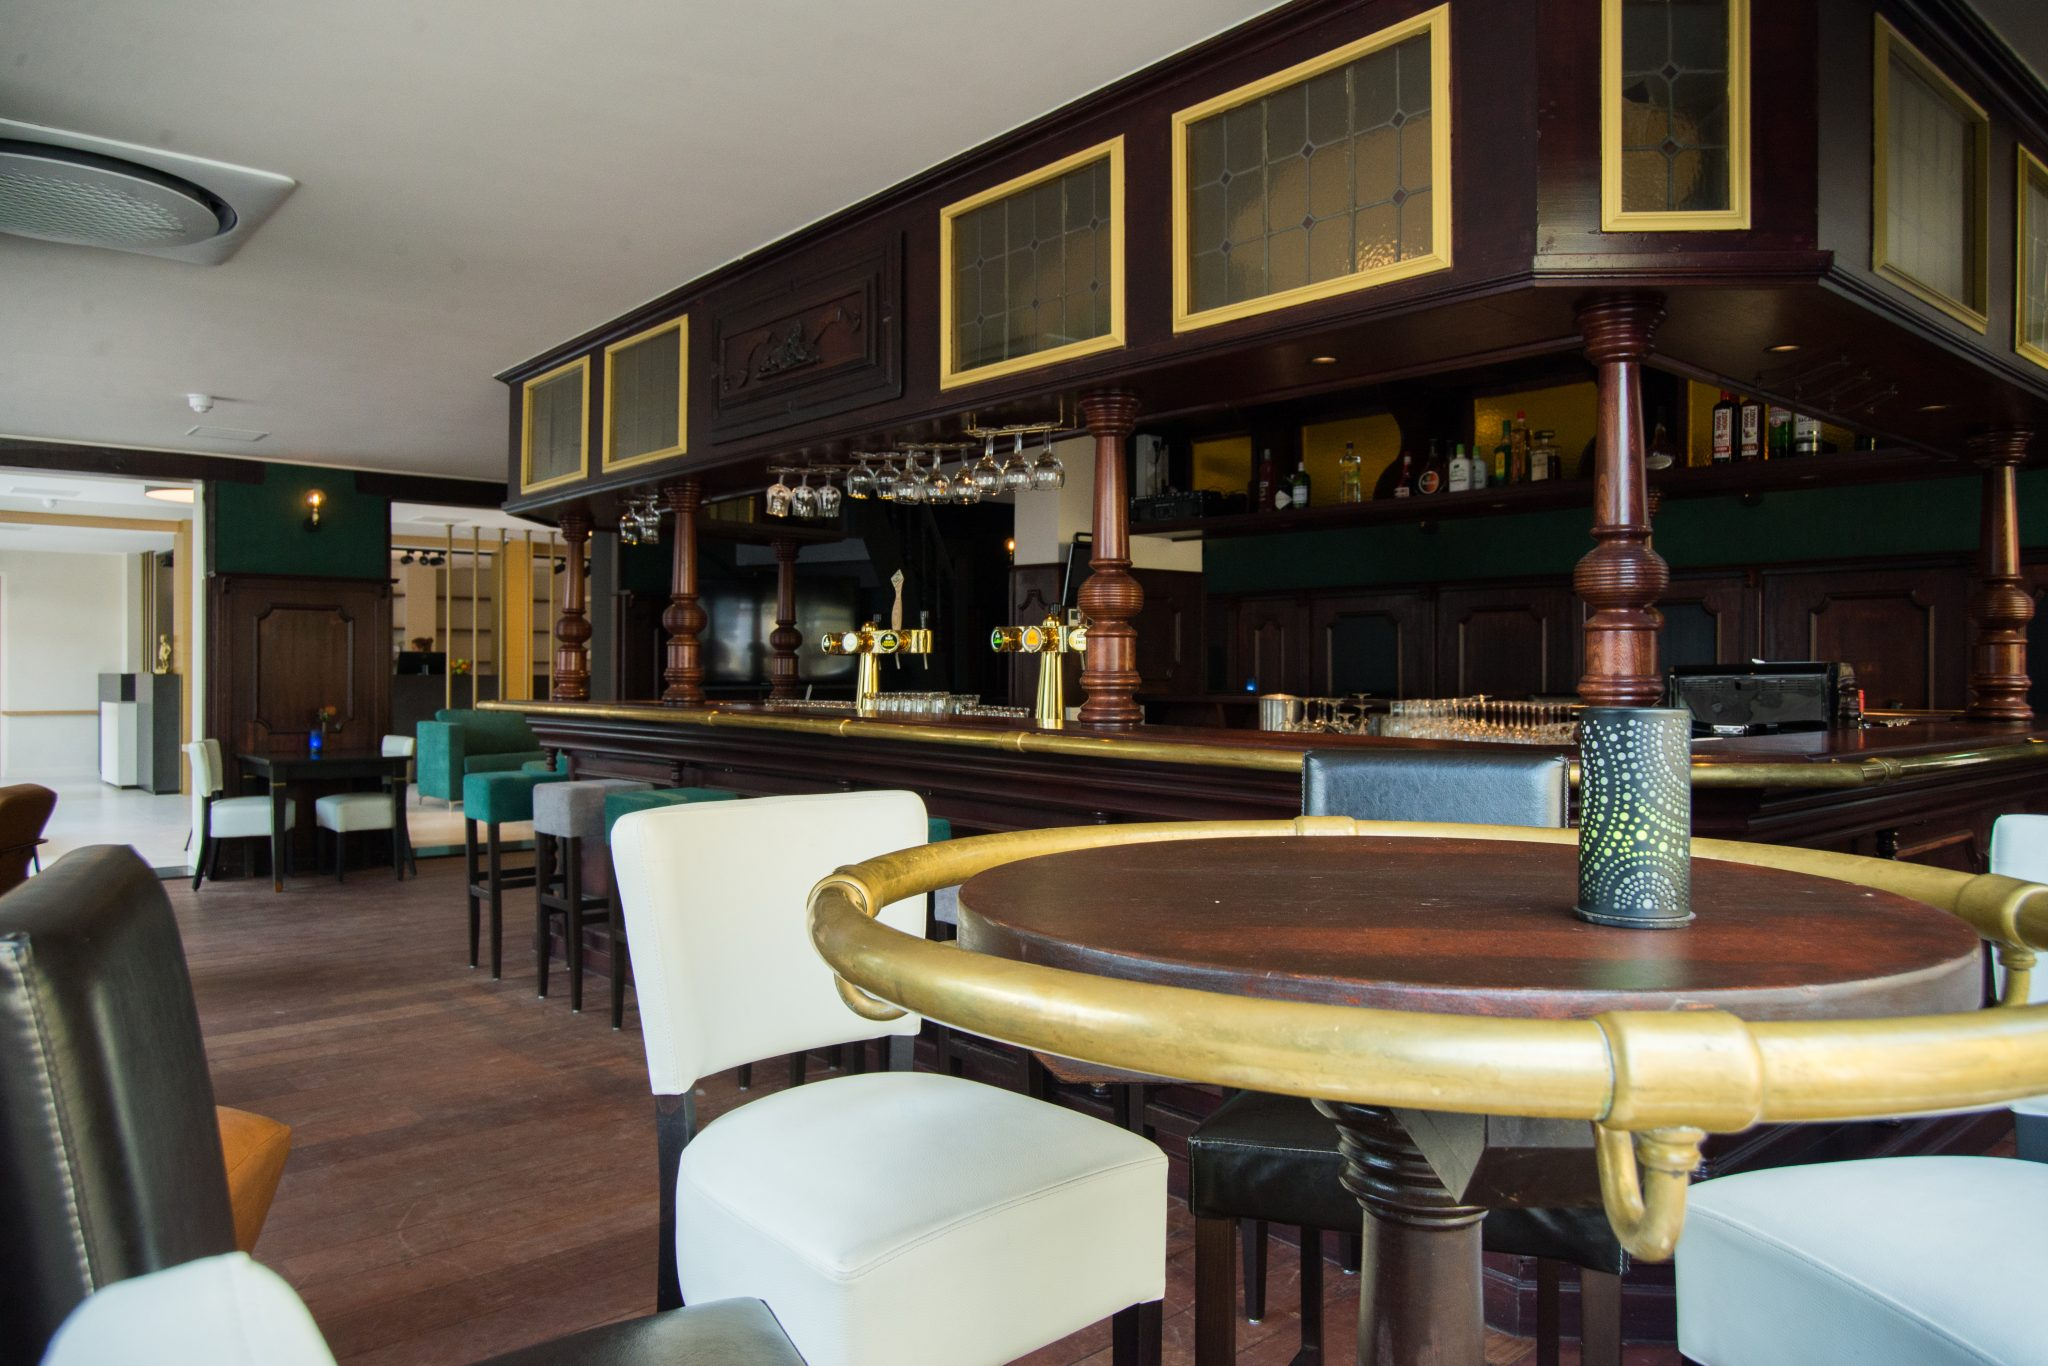 Hotelbar detail